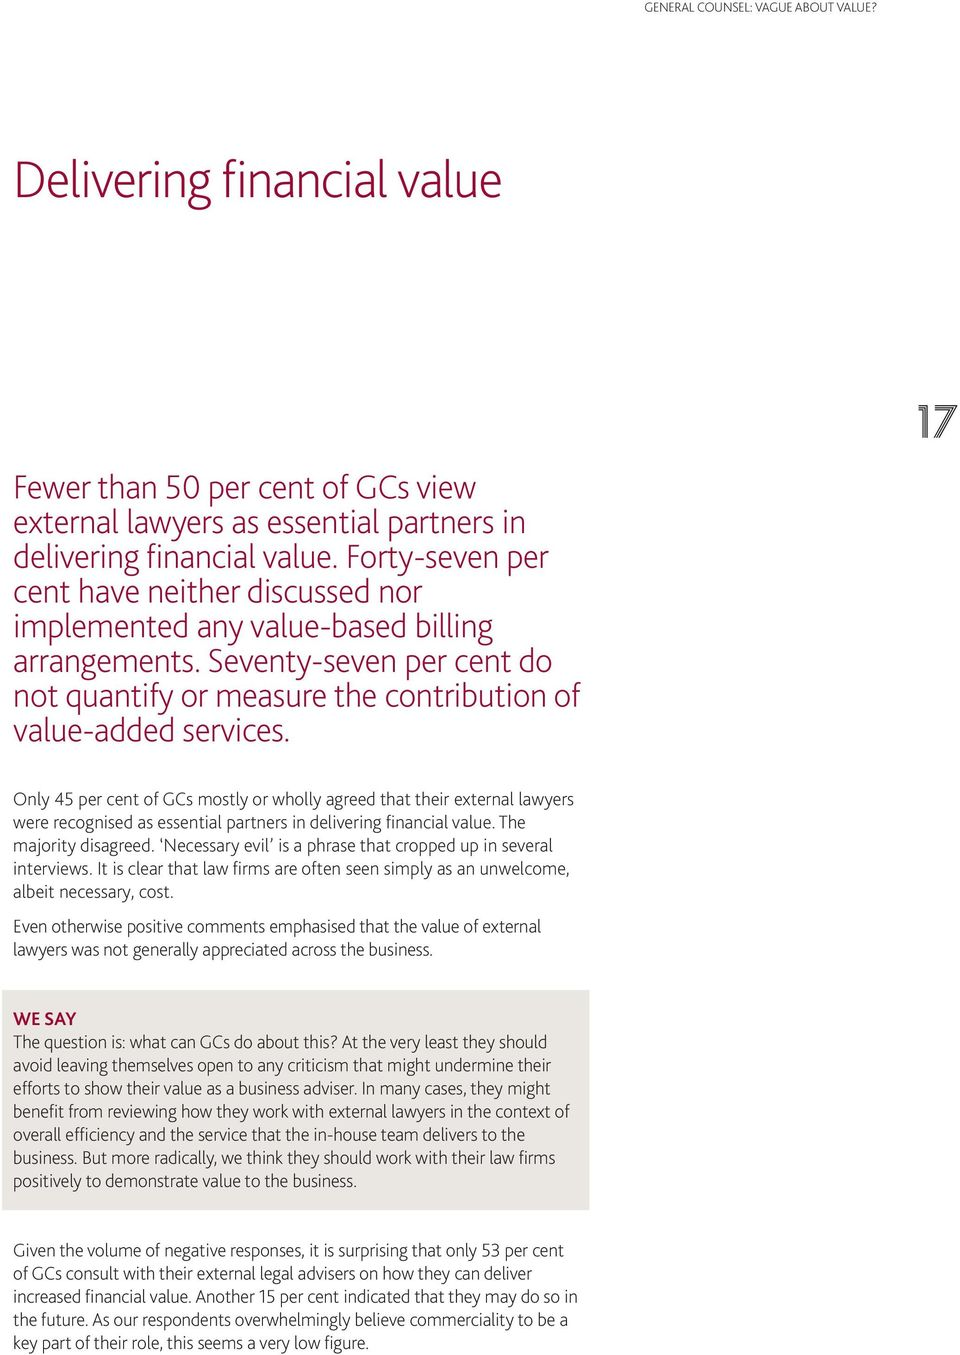 Only 45 per cent of GCs mostly or wholly agreed that their external lawyers were recognised as essential partners in delivering financial value. The majority disagreed.